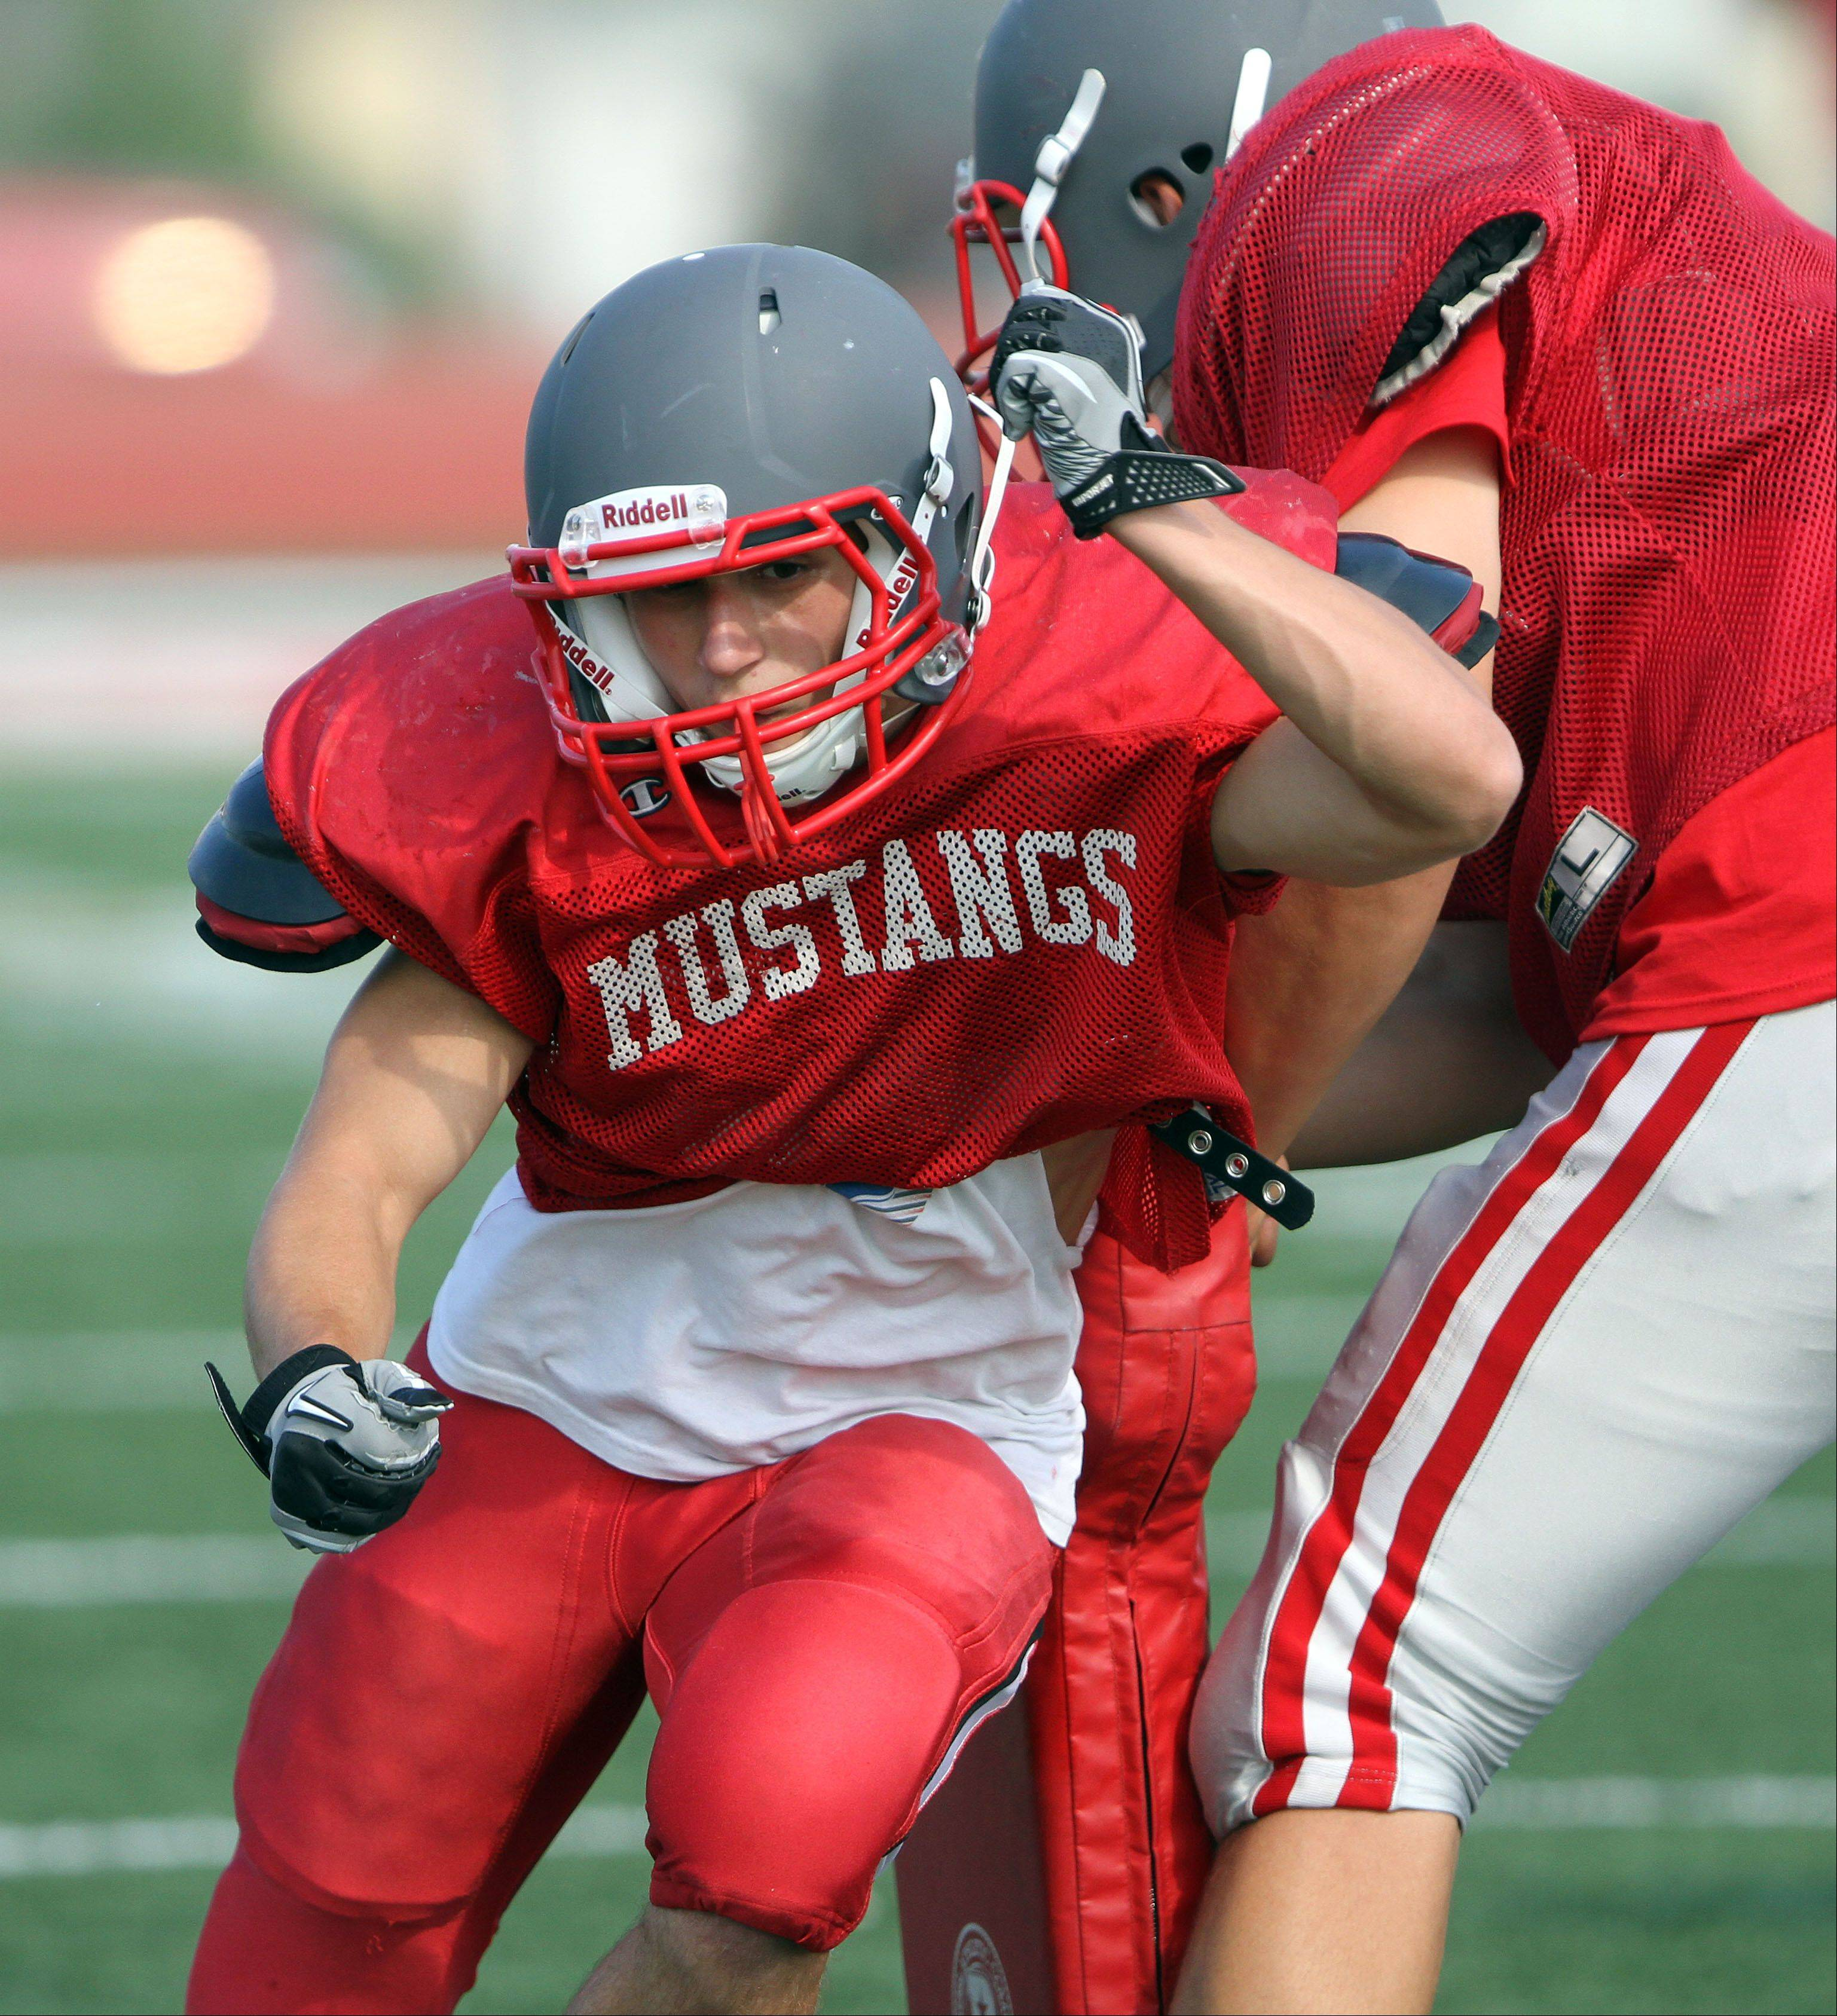 Matt Hutchison runs through drills during football practice at Mundelein.